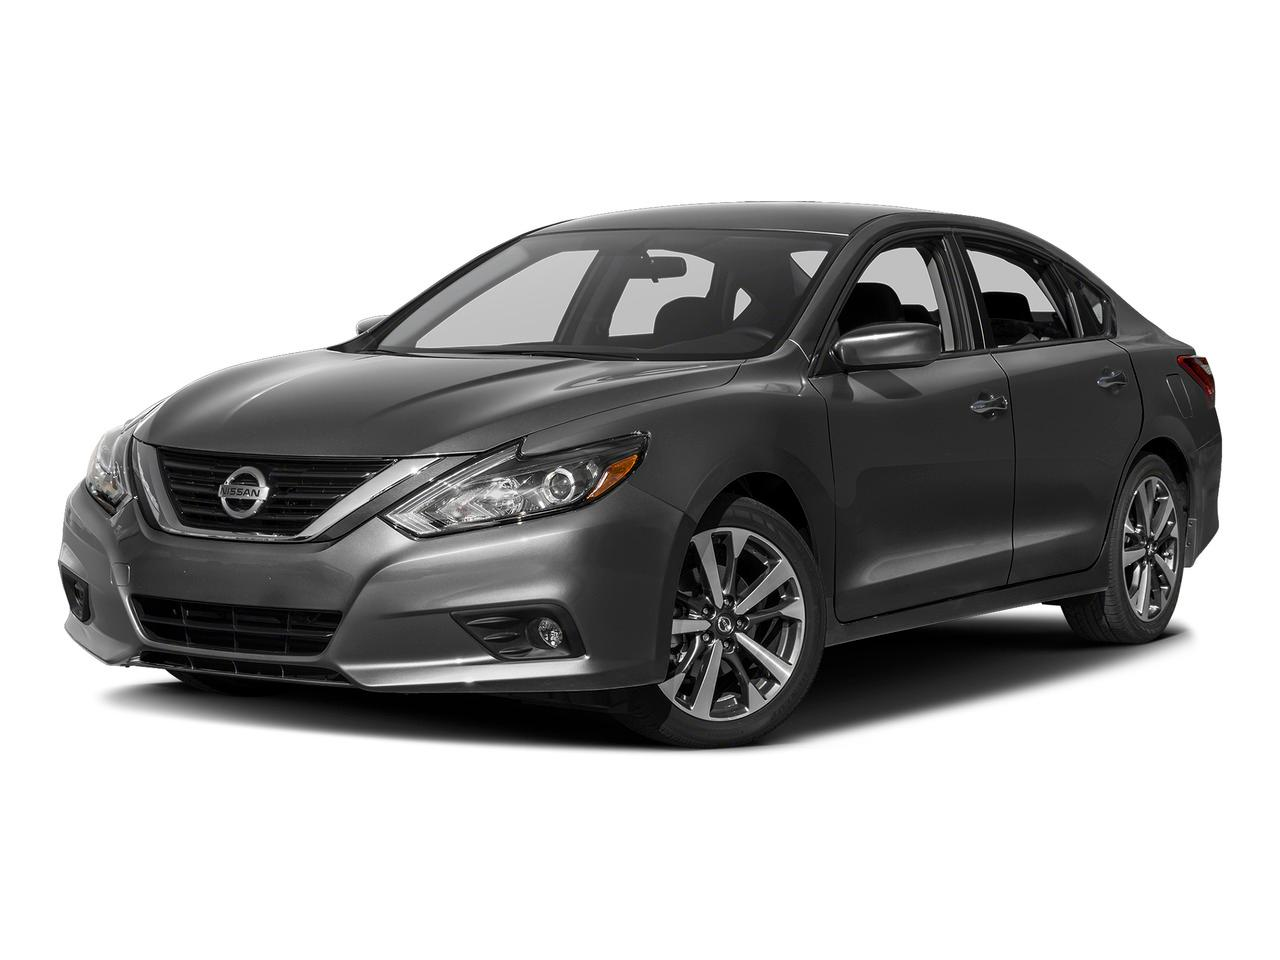 2017 Nissan Altima Vehicle Photo in Bowie, MD 20716